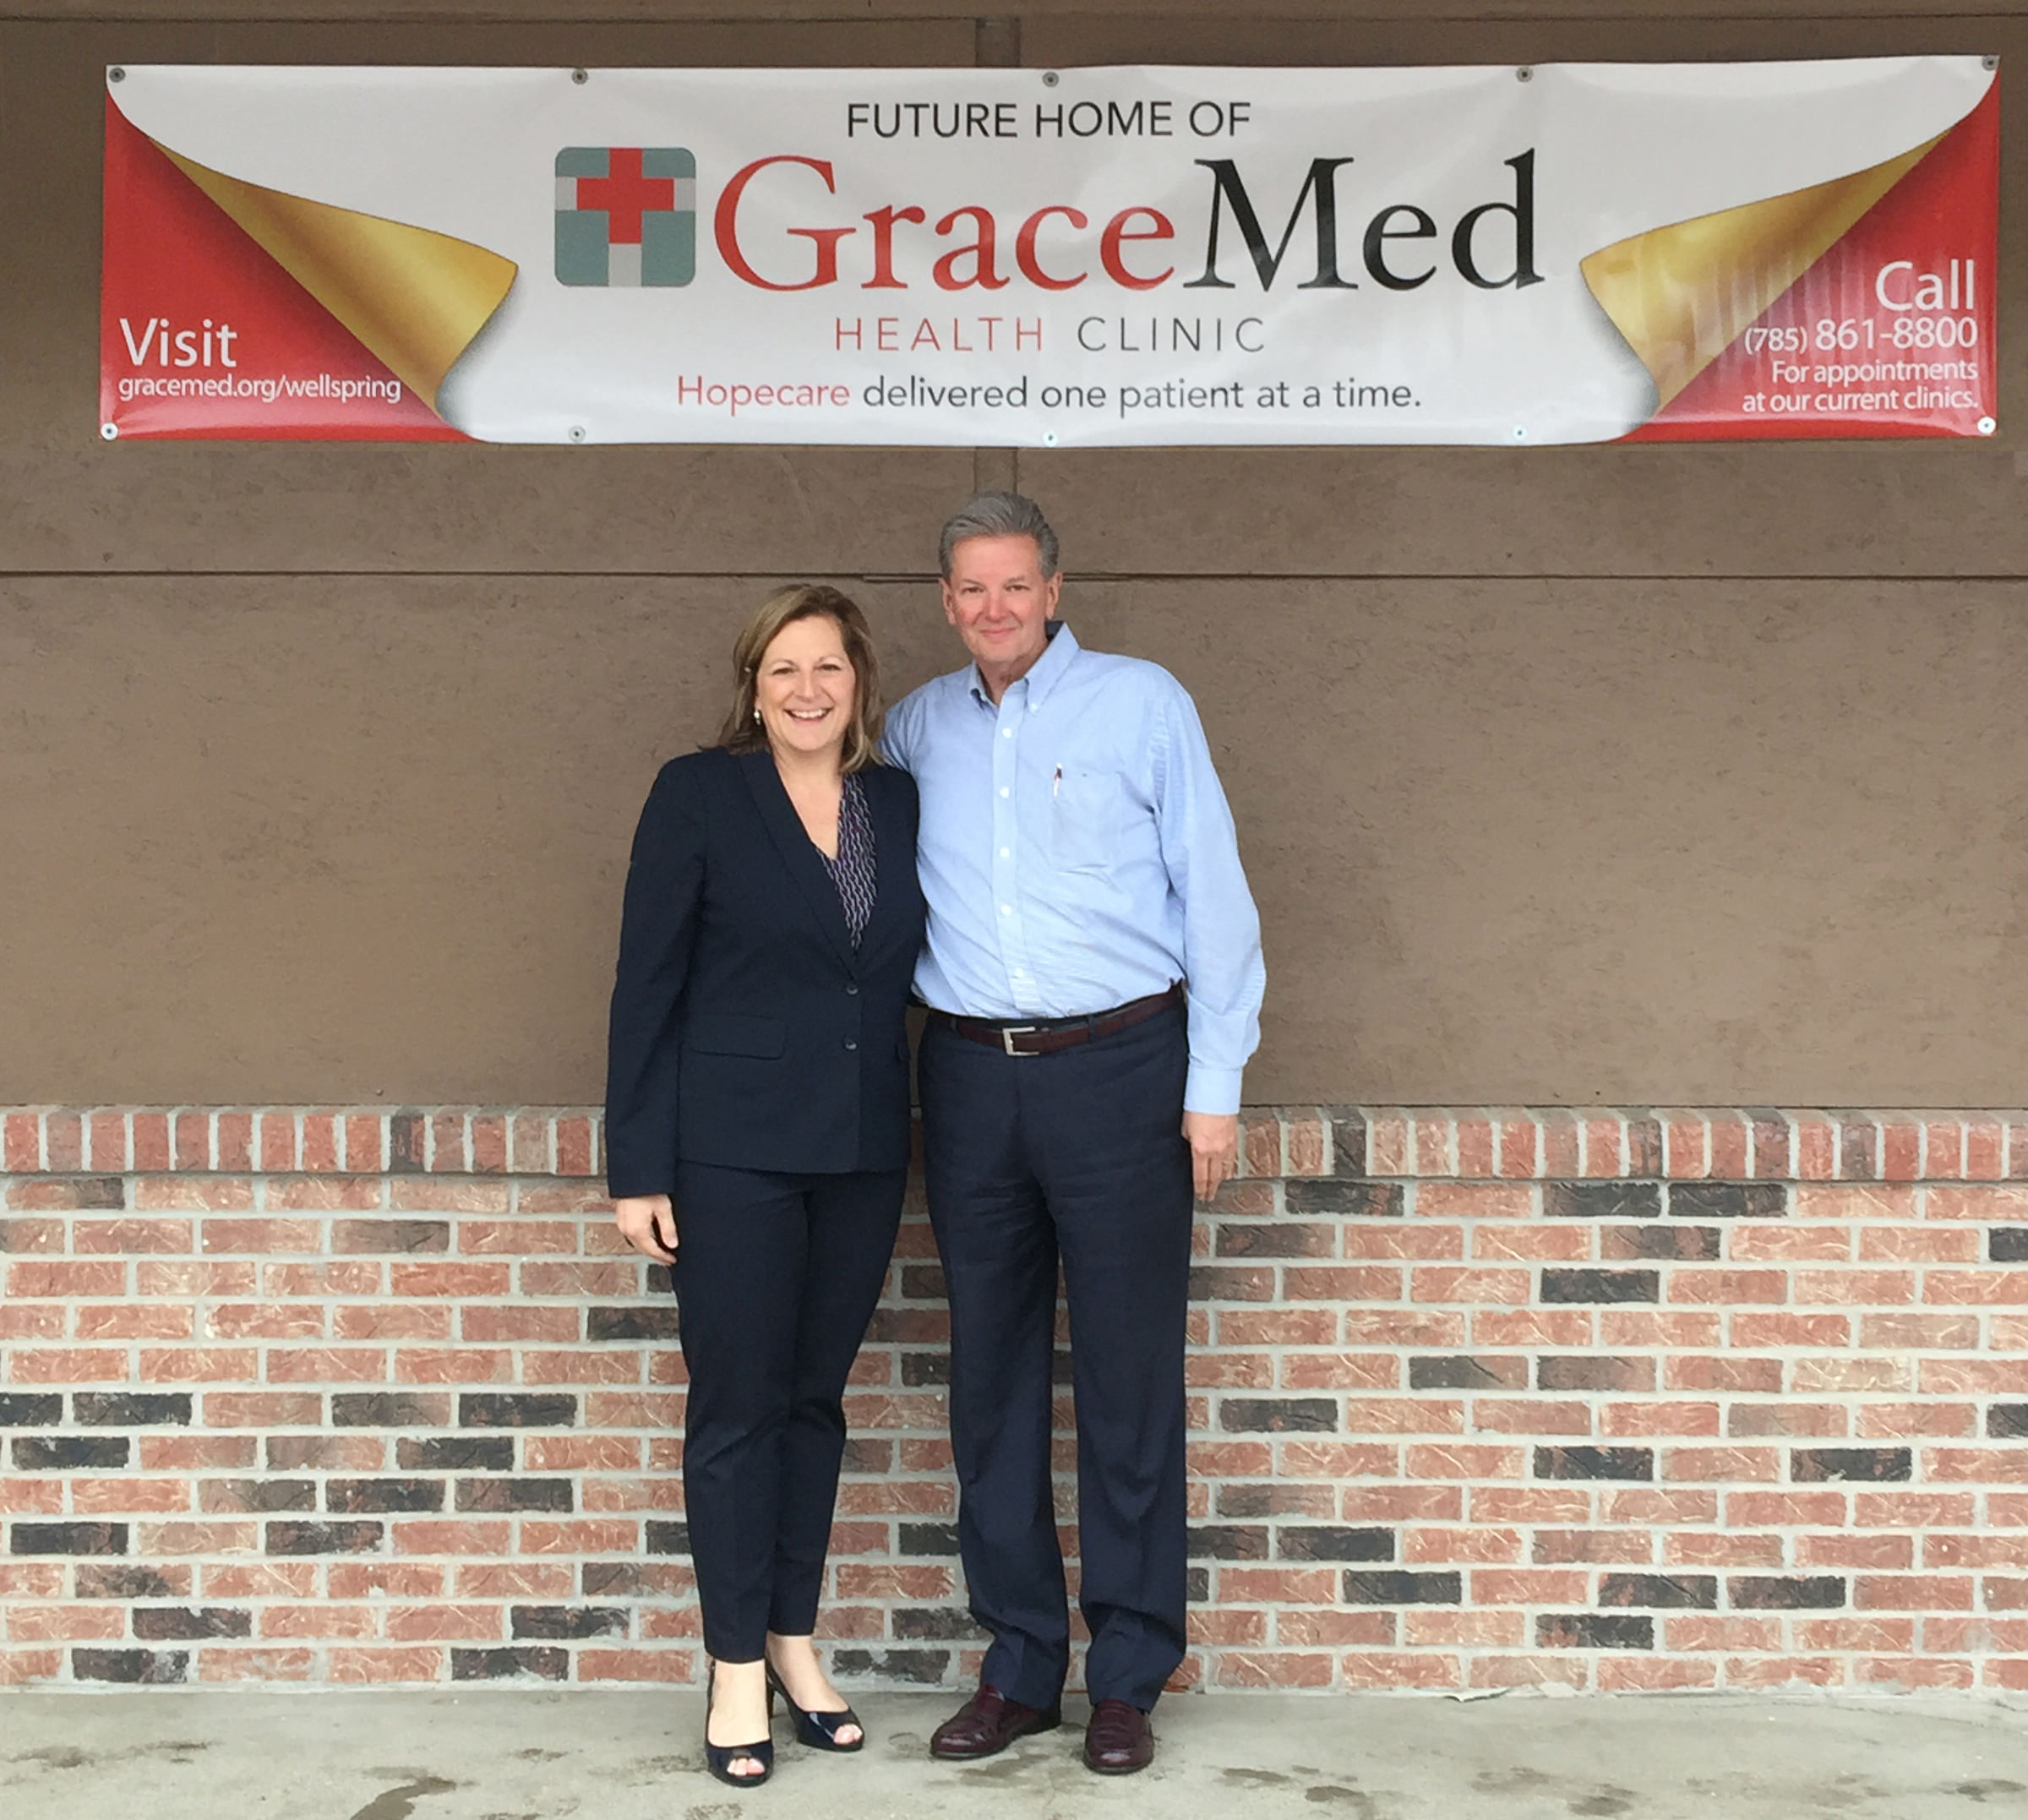 There are currently 25,000 Topekans who are considered to be medically underserved. The completion of this clinic will put GraceMed in a position to serve a significant number of them. - Left: GraceMed Director of Community Development Alice Weingartner and CEO Dave Sanford